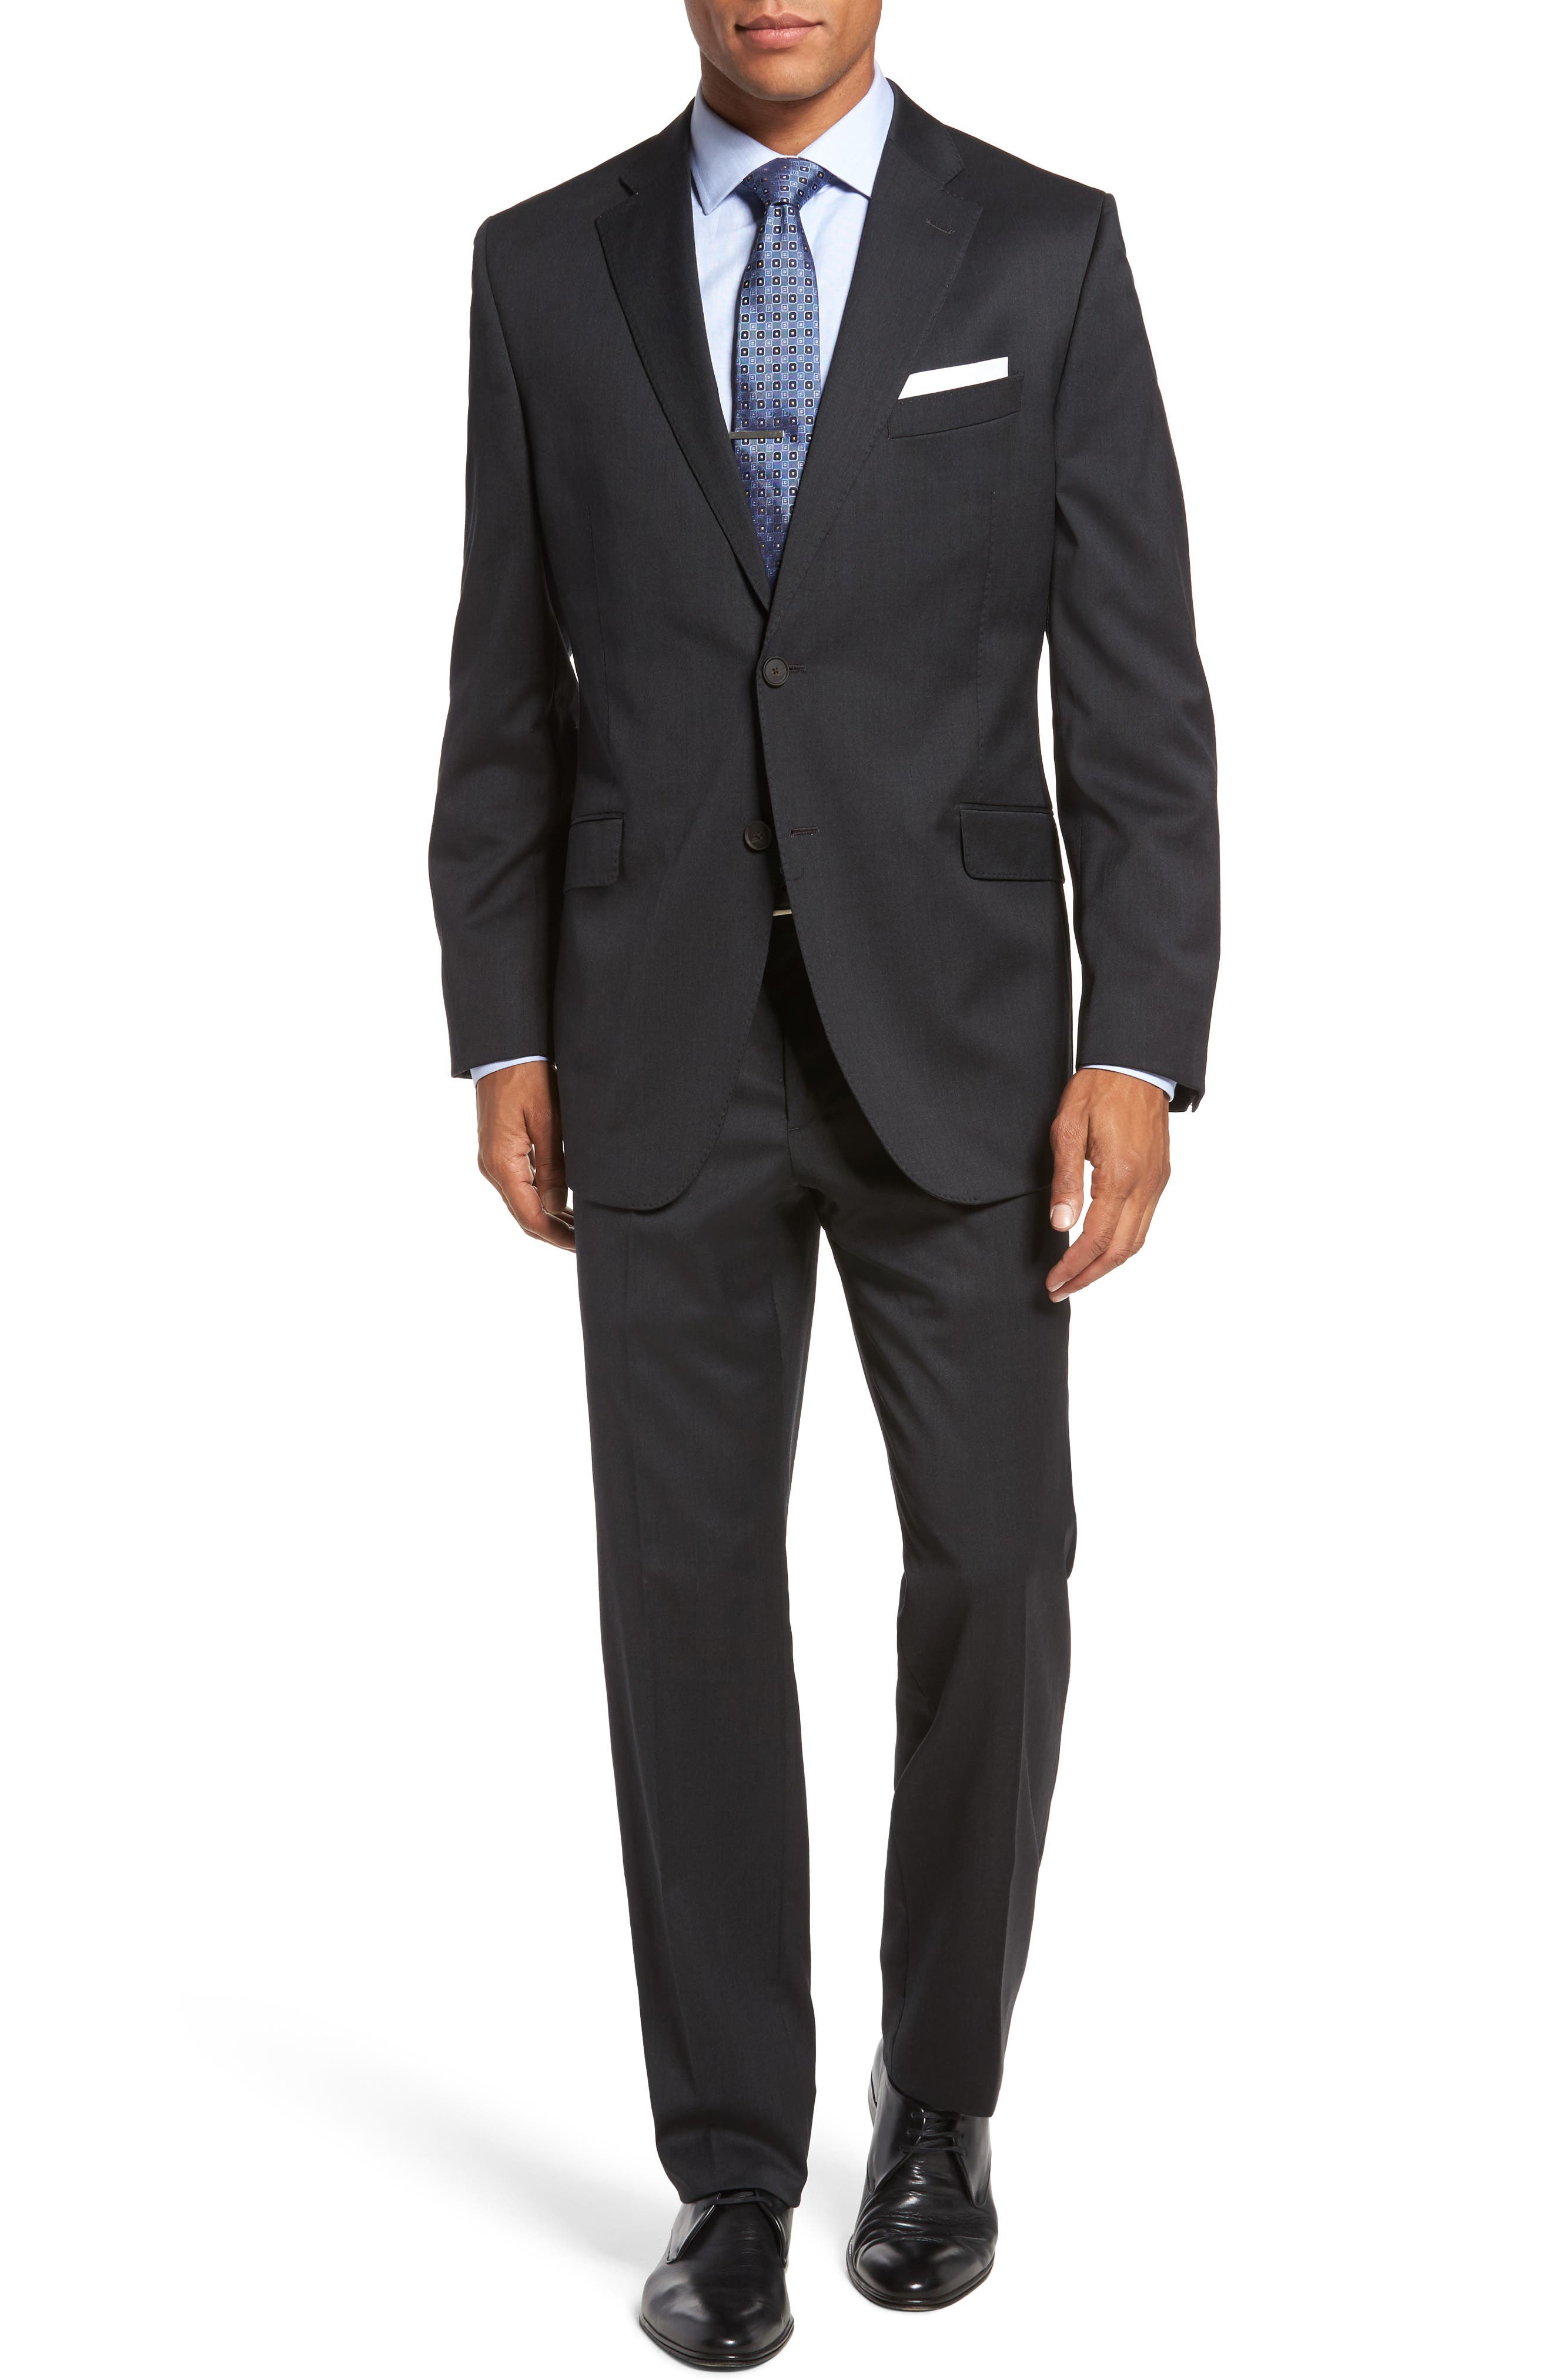 Keidis Aim Classic Fit Stretch Wool Suit,                             Main thumbnail 1, color,                             Charcoal